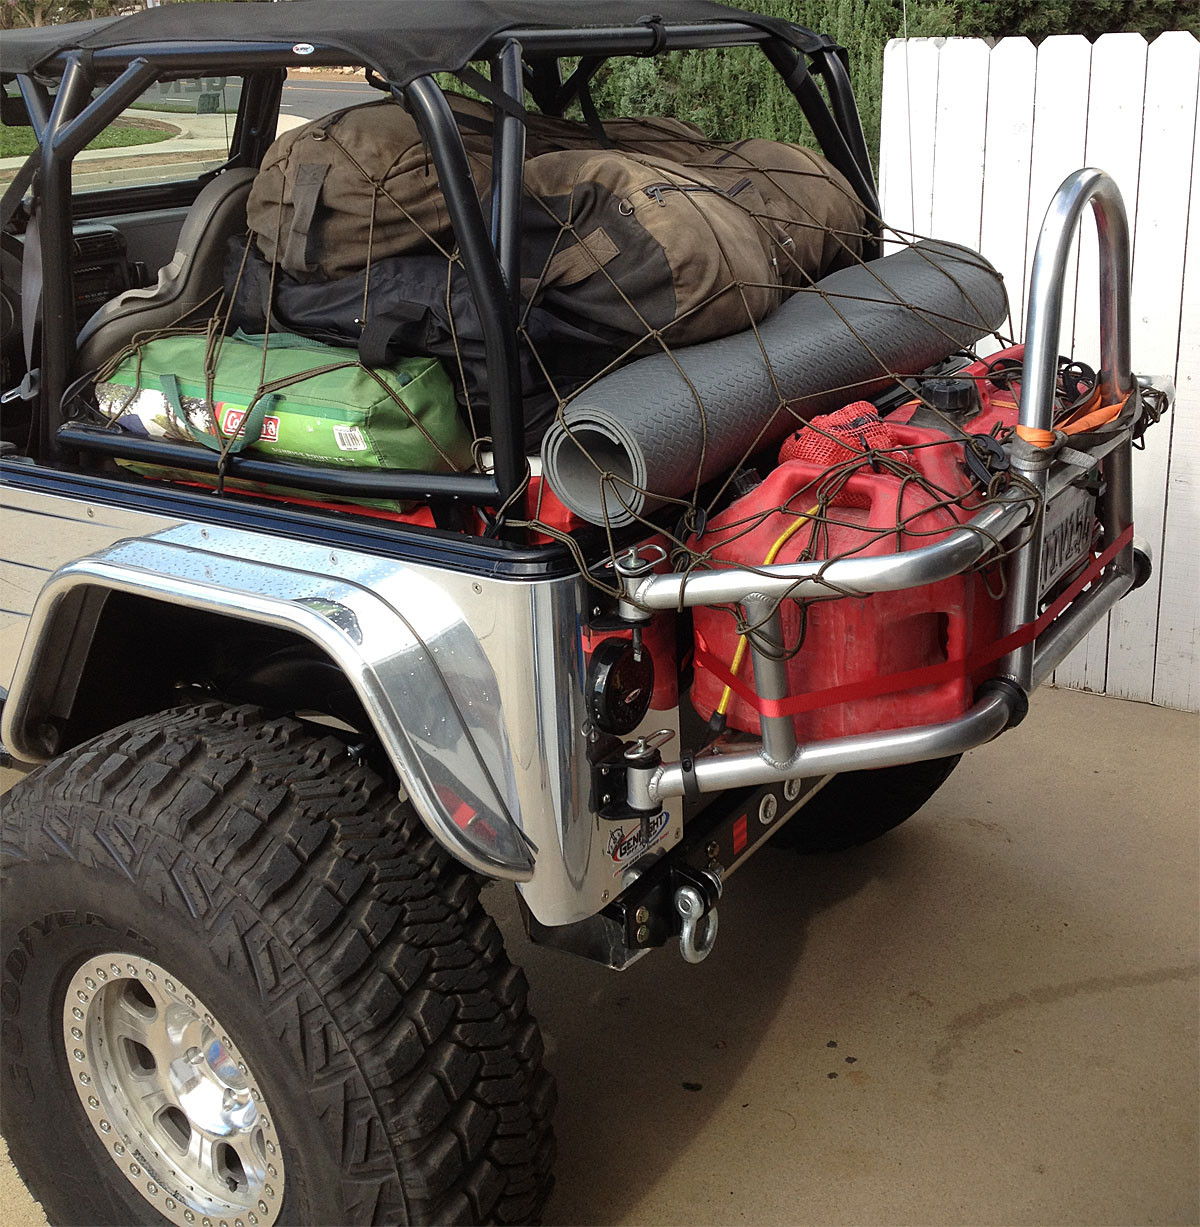 Tony uses the cargo rack to go camping on the Rubicon